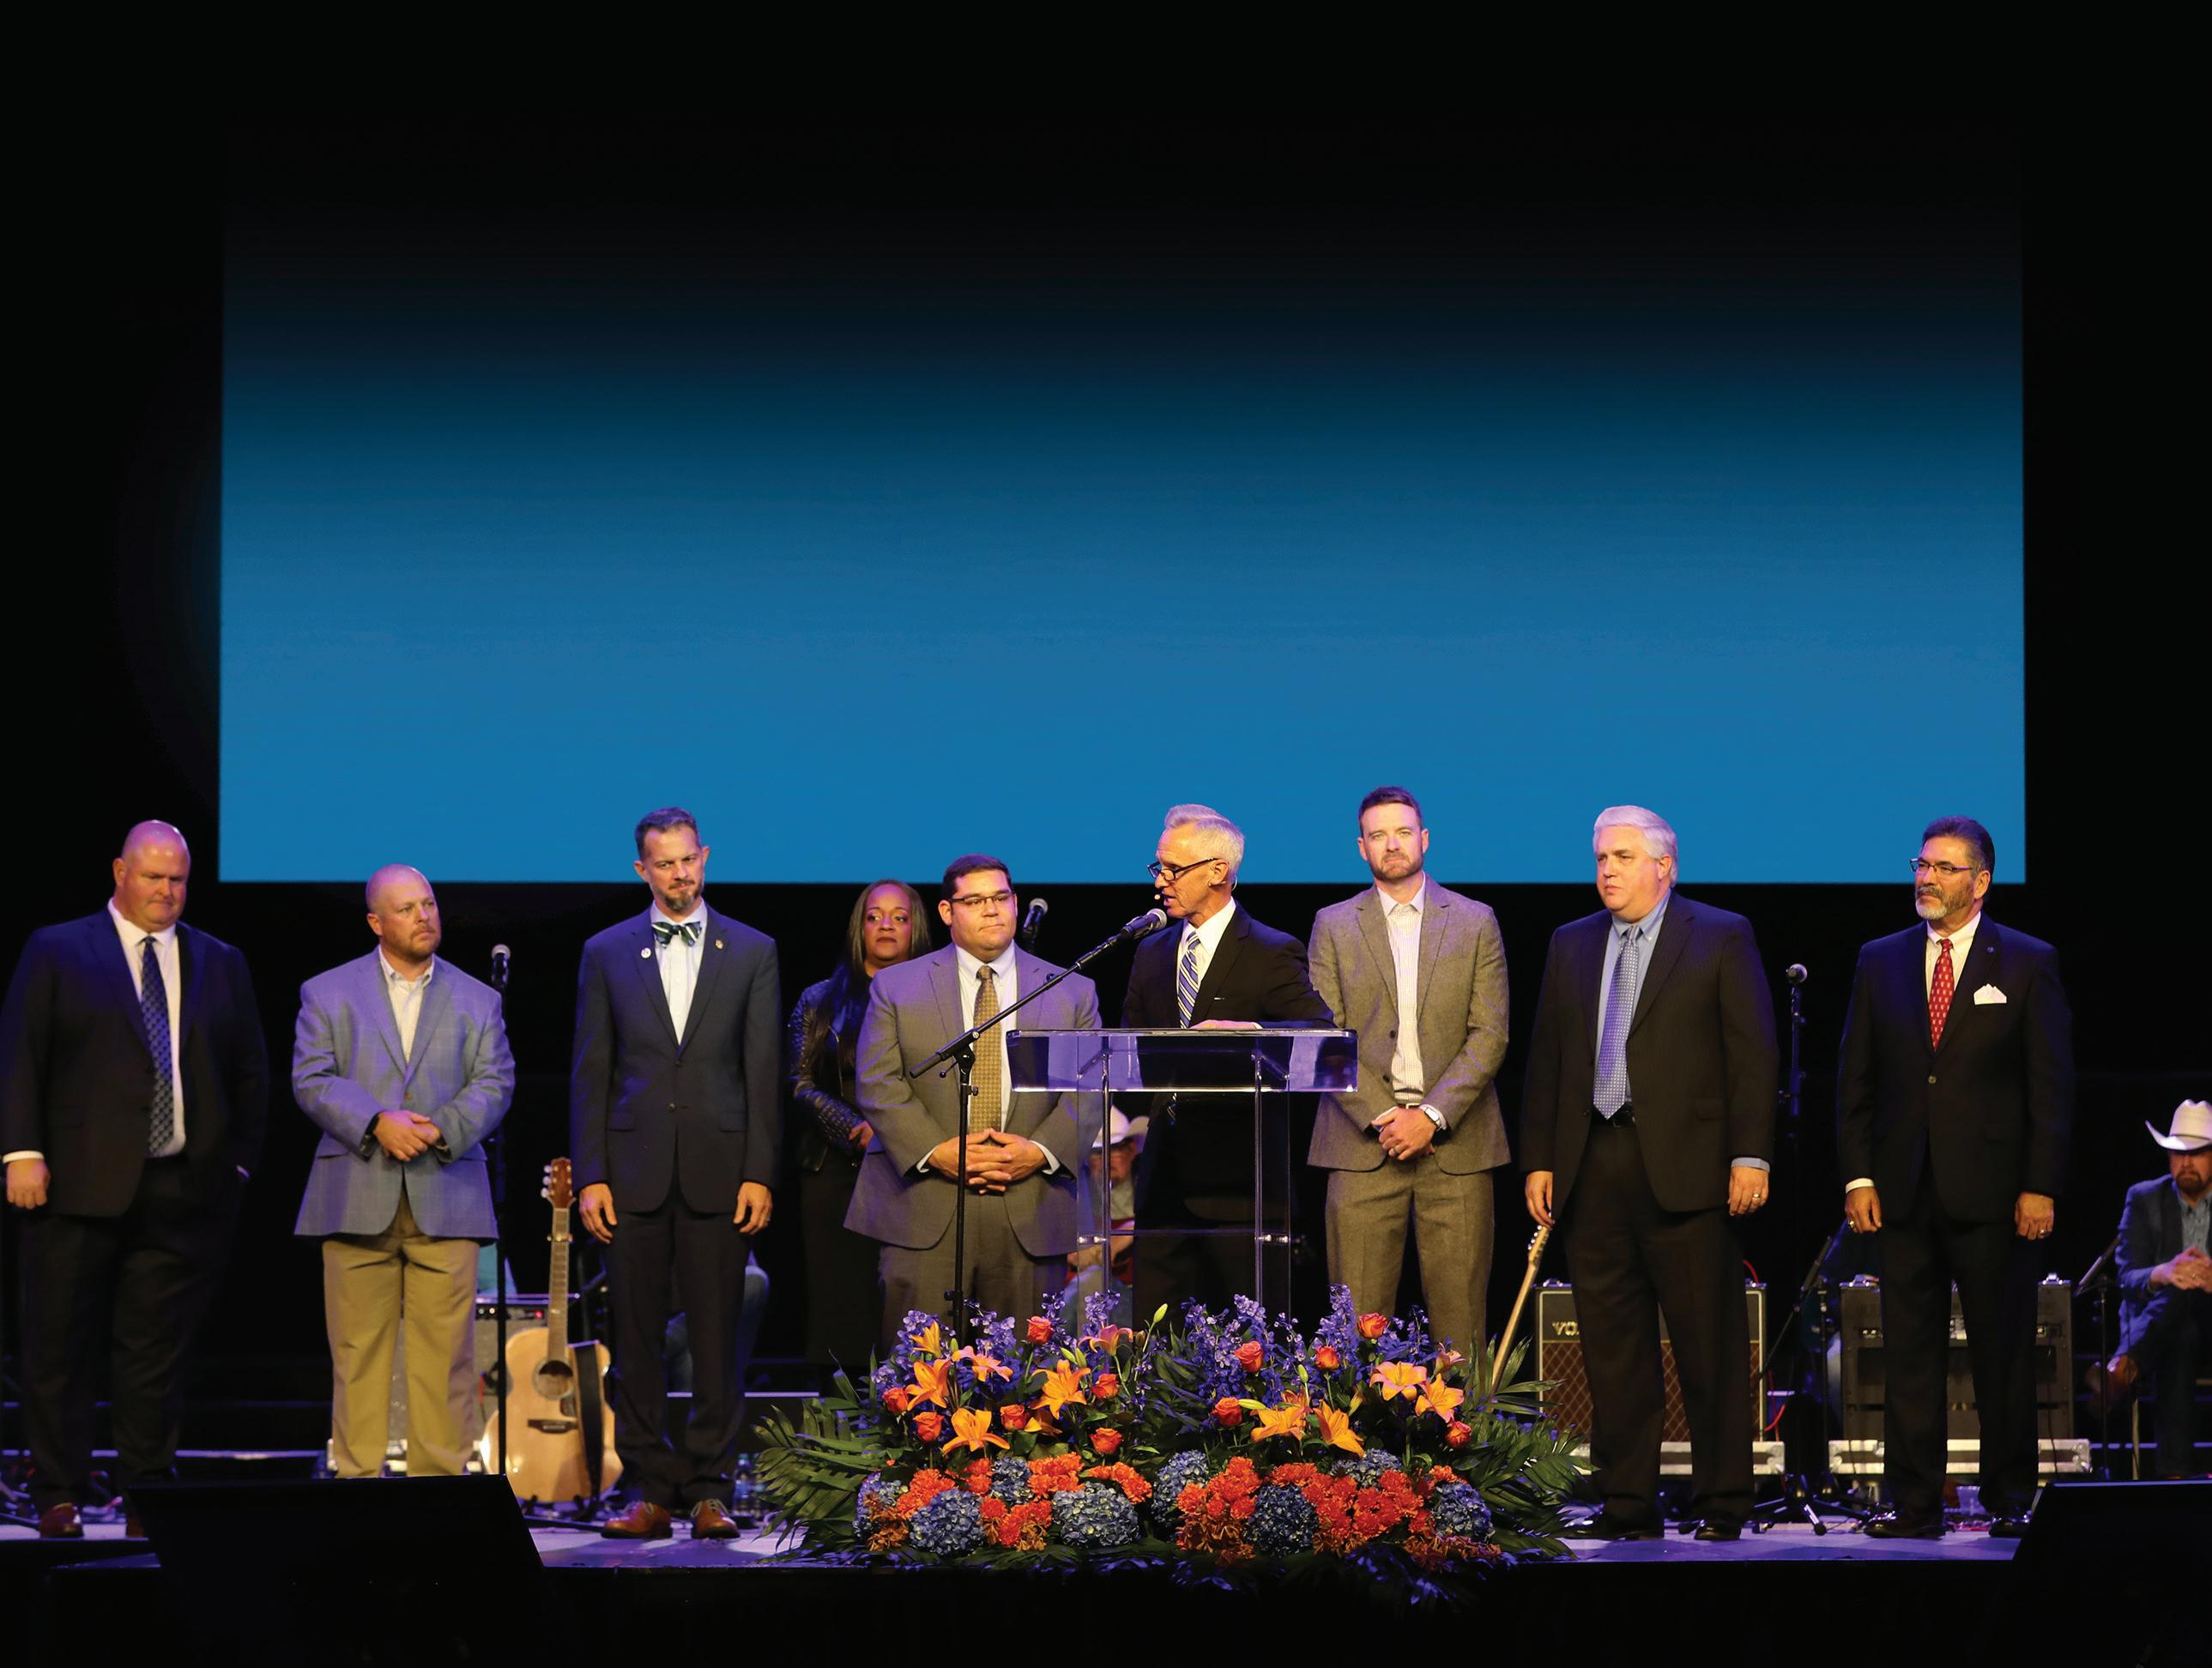 Page 10 of Texas Baptists compelled to care for vulnerable children during 2019 Annual Meeting